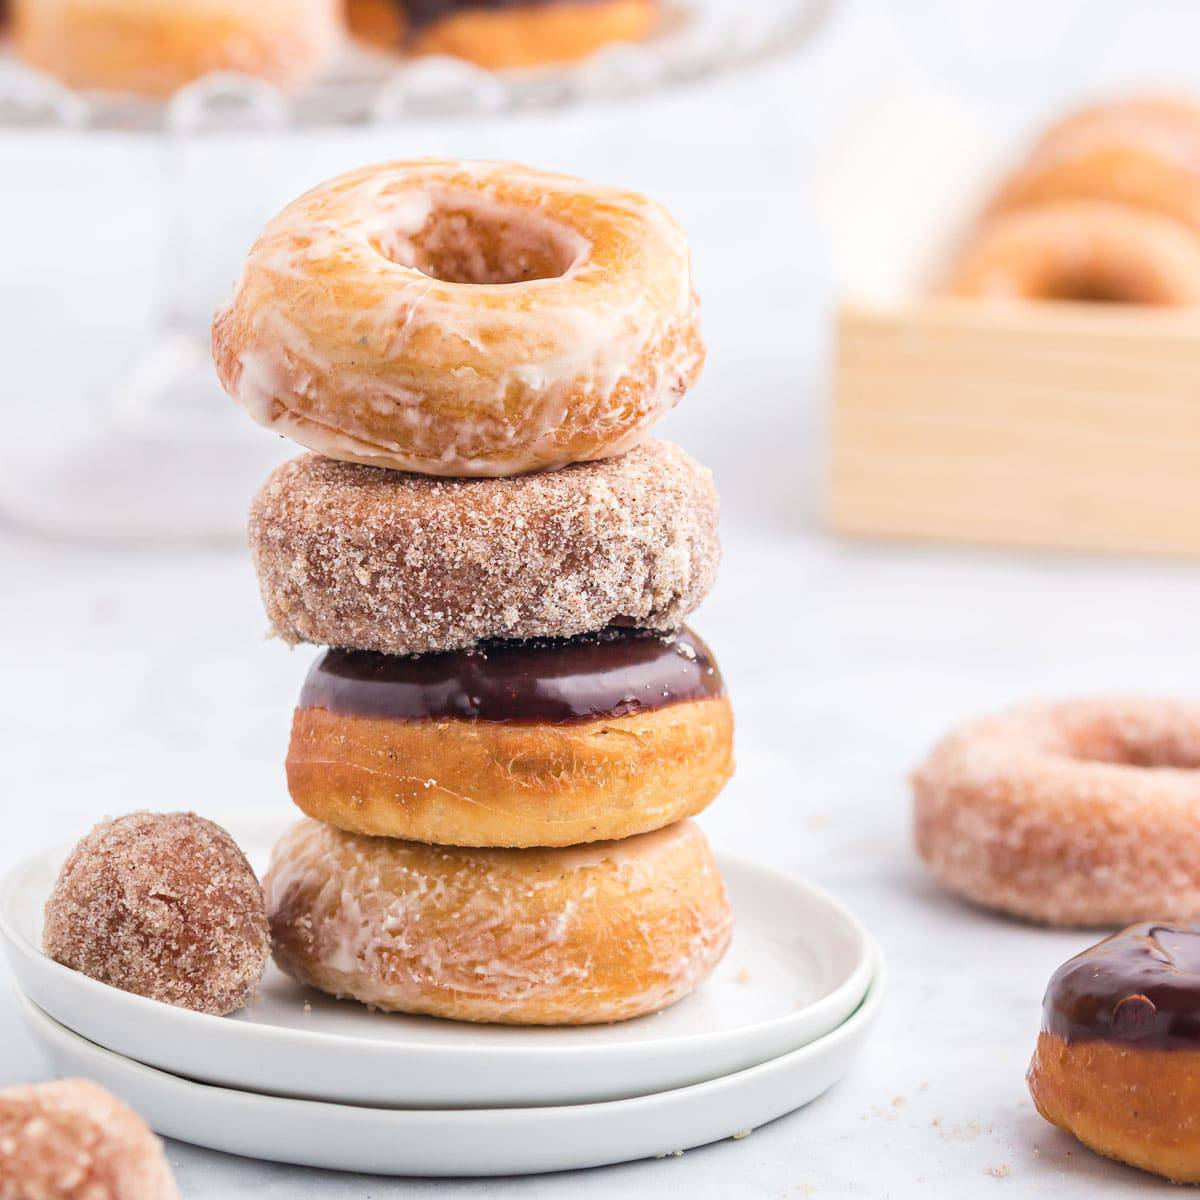 A stack of donuts on a plate